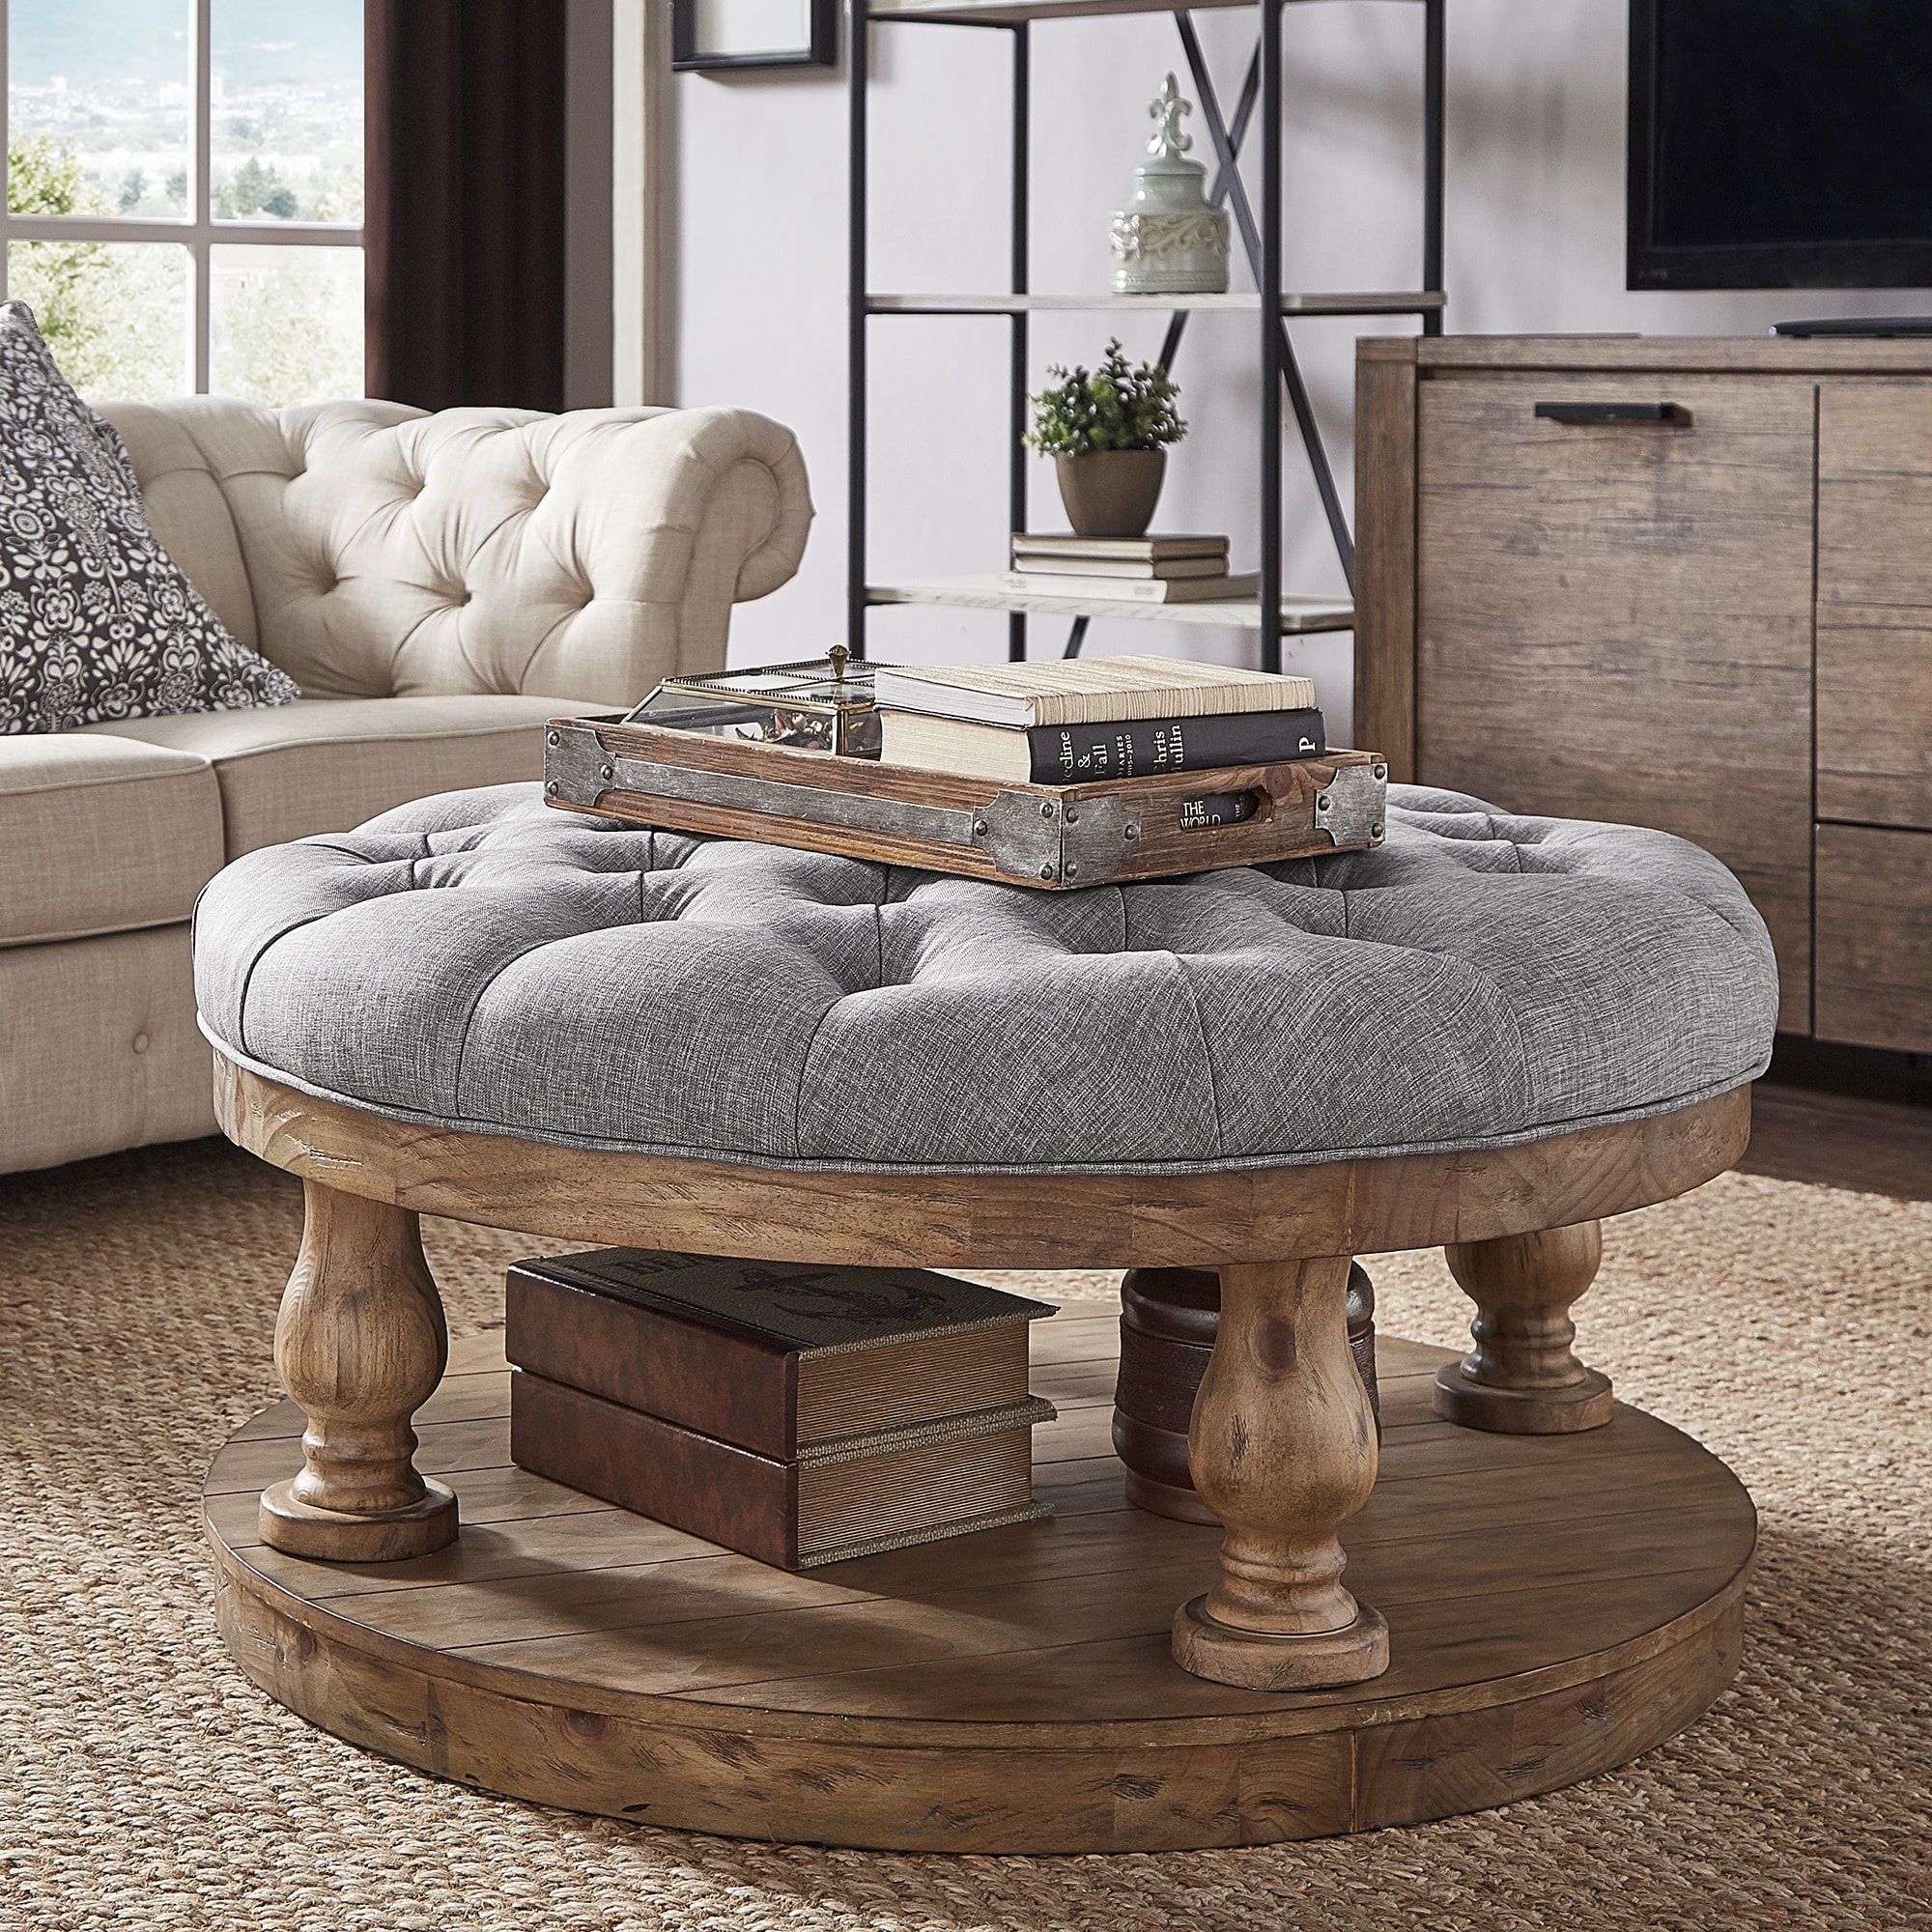 - Buy Round, Rustic Ottomans & Storage Ottomans Online At Overstock